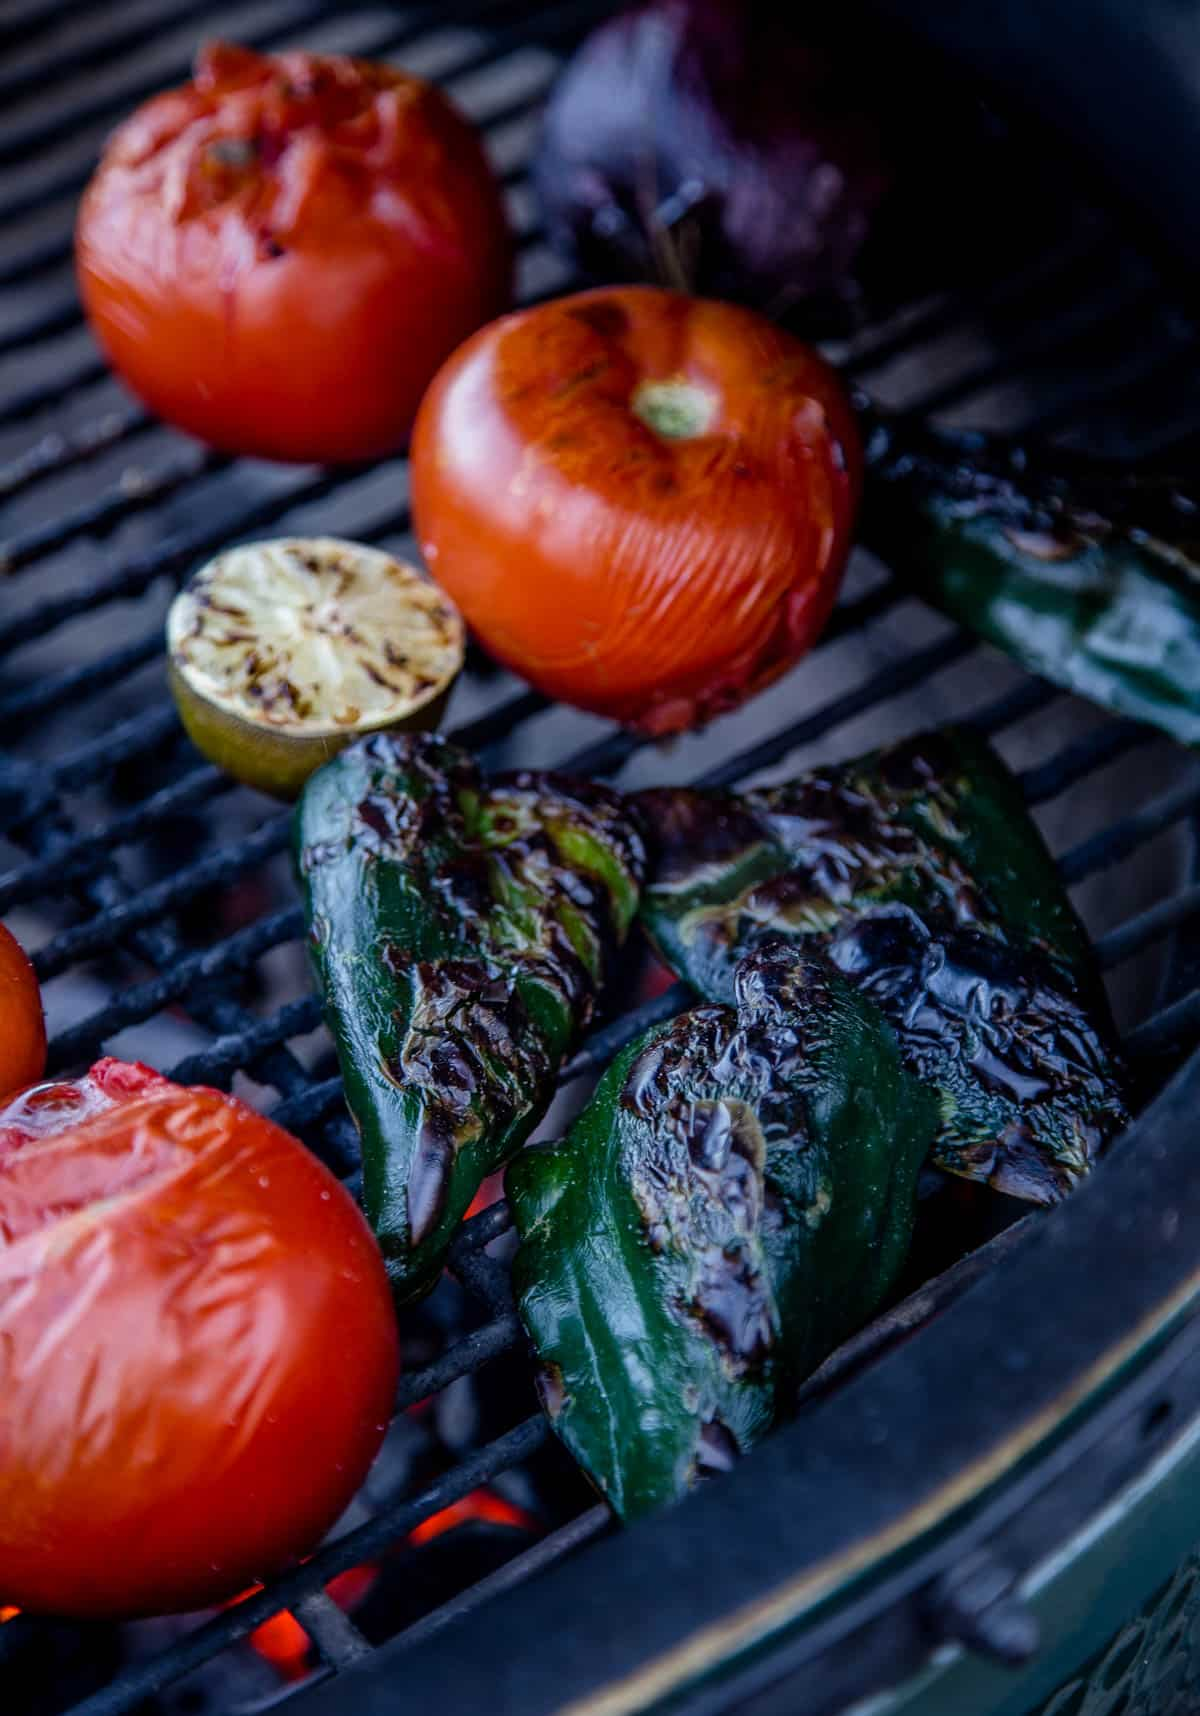 Roasting vegetables on a grill